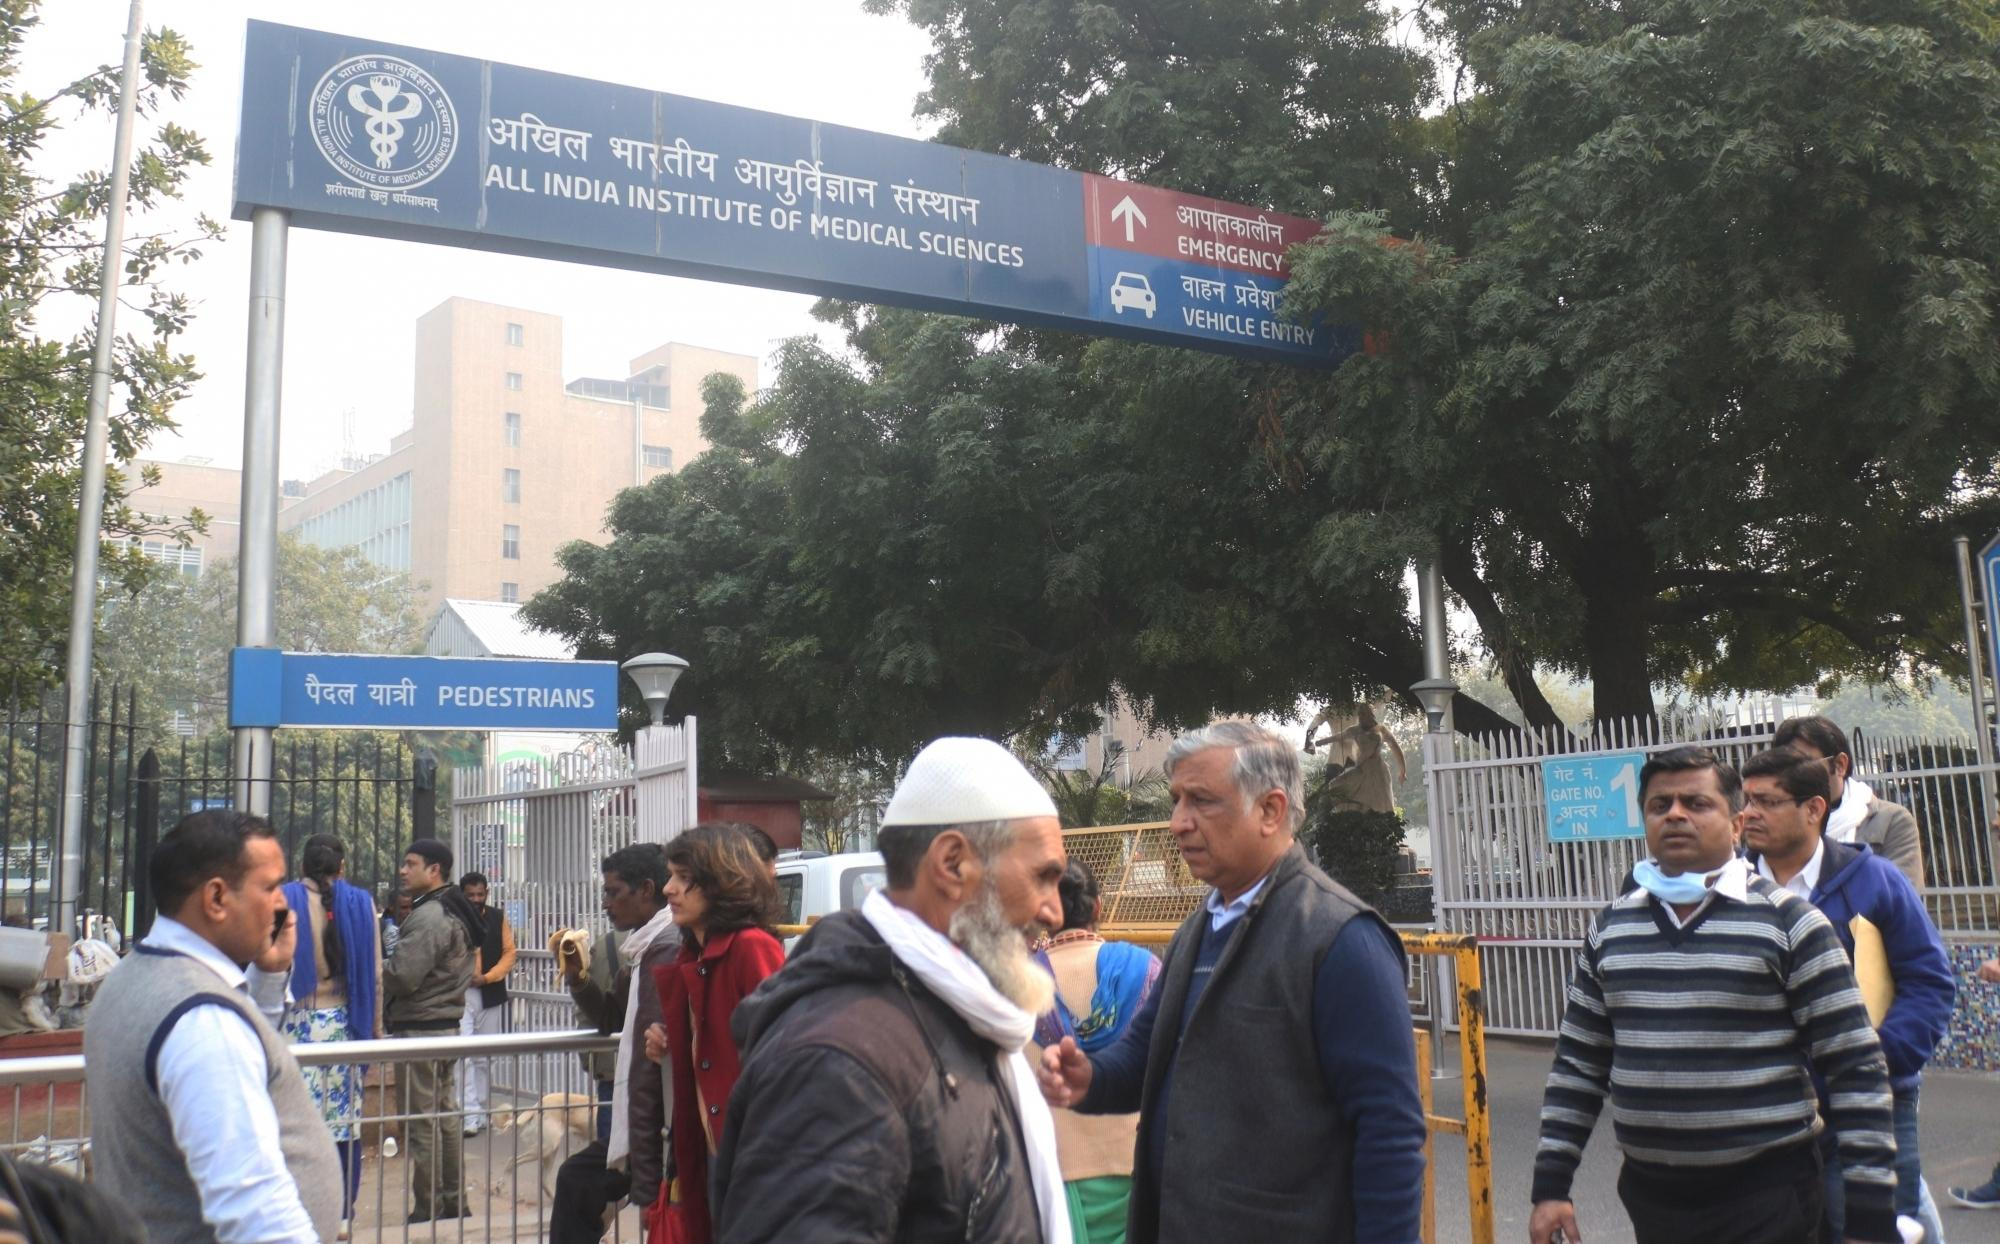 AIIMS, New Delhi: All India Institute of Medical Sciences (AIIMS), New Delhi, has ranked as the best institute in the medical category in the NIRF 2019 rankings.  (Image: IANS)